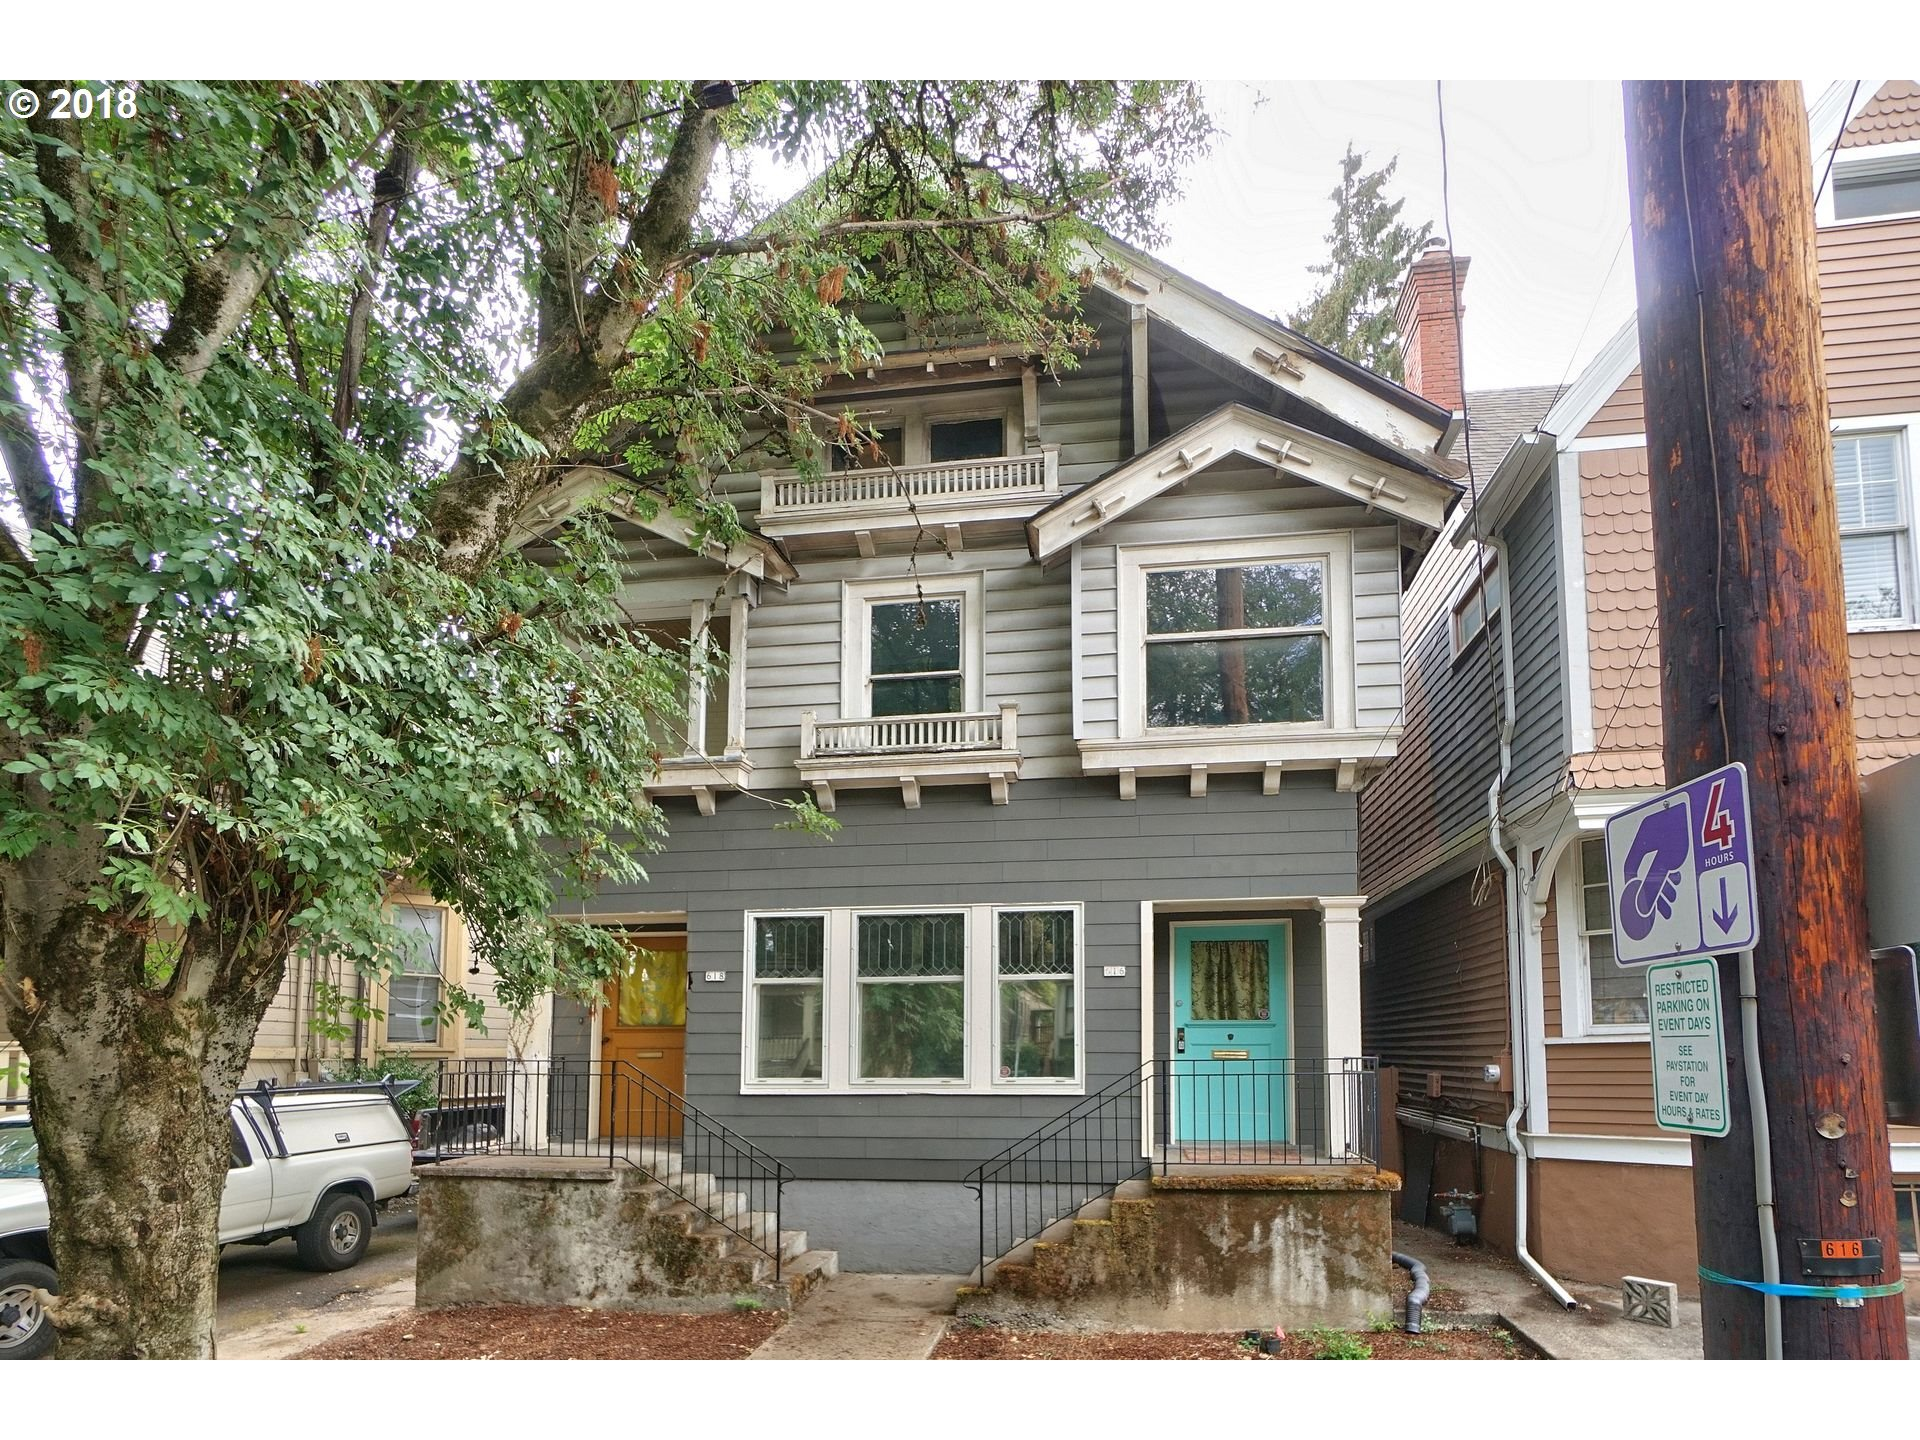 Photo for 616 NW 22ND AVE, Portland, OR 97210 (MLS # 18510536)